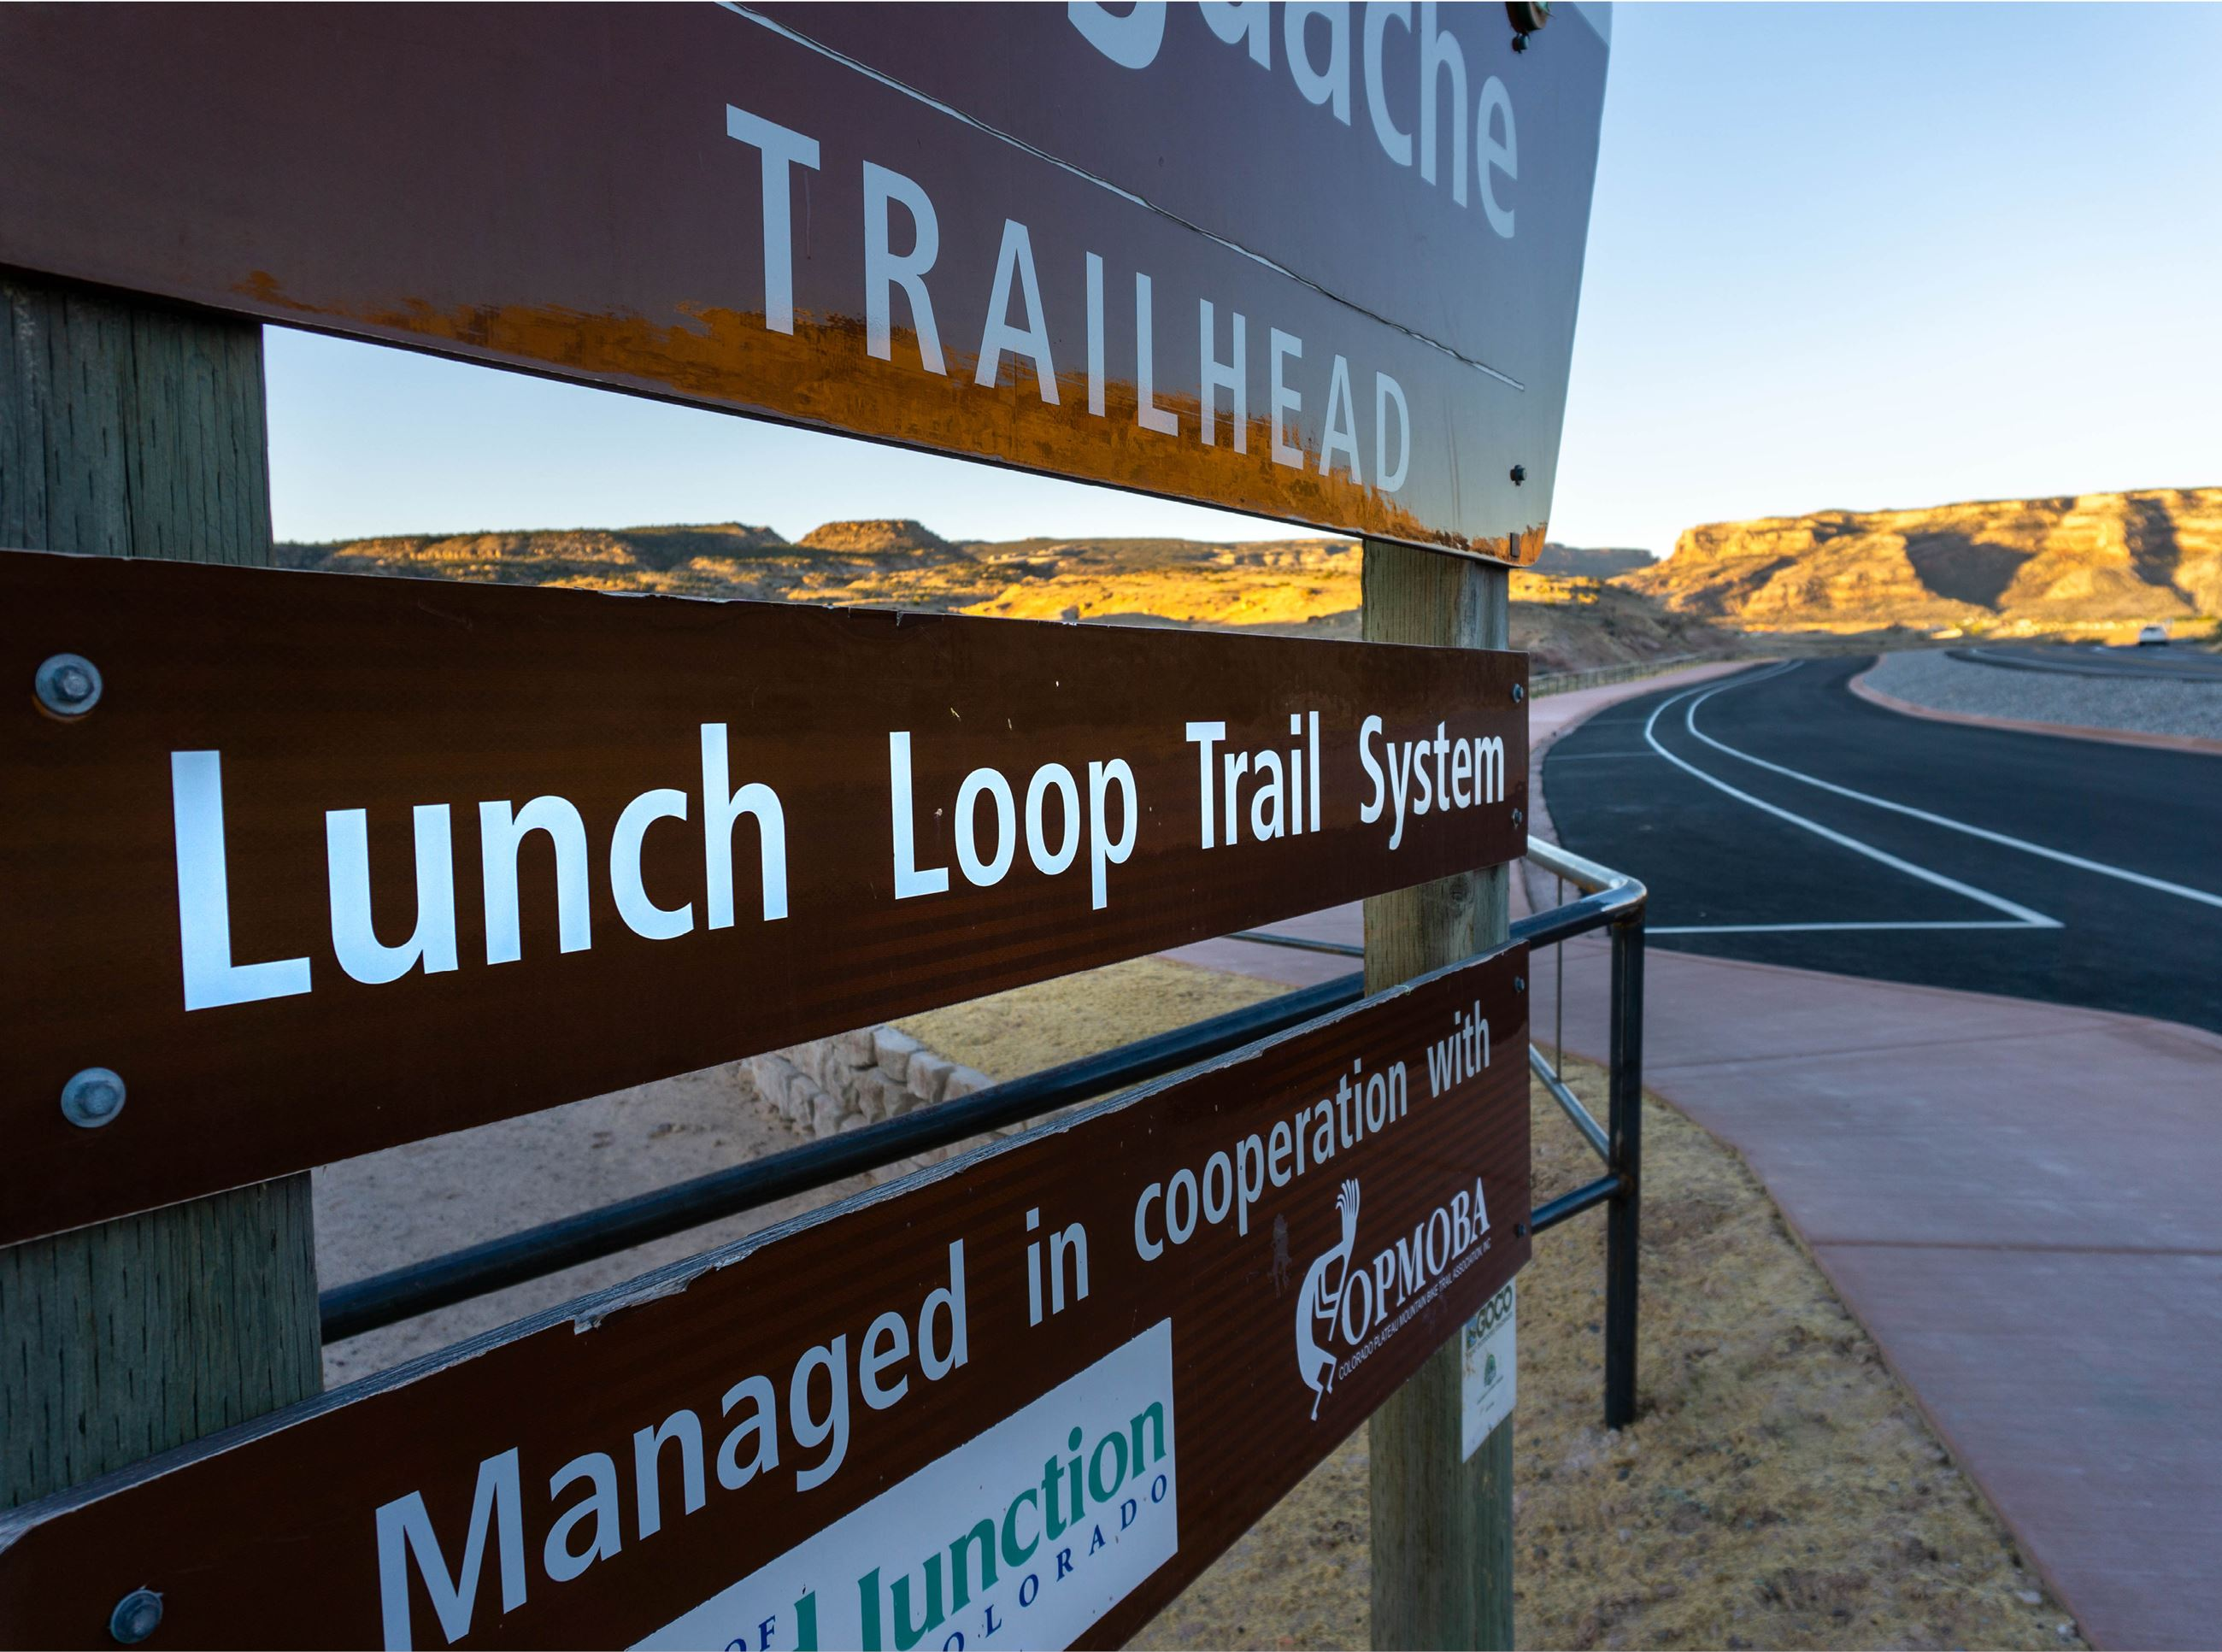 Lunch Loop Trailhead Spotlight